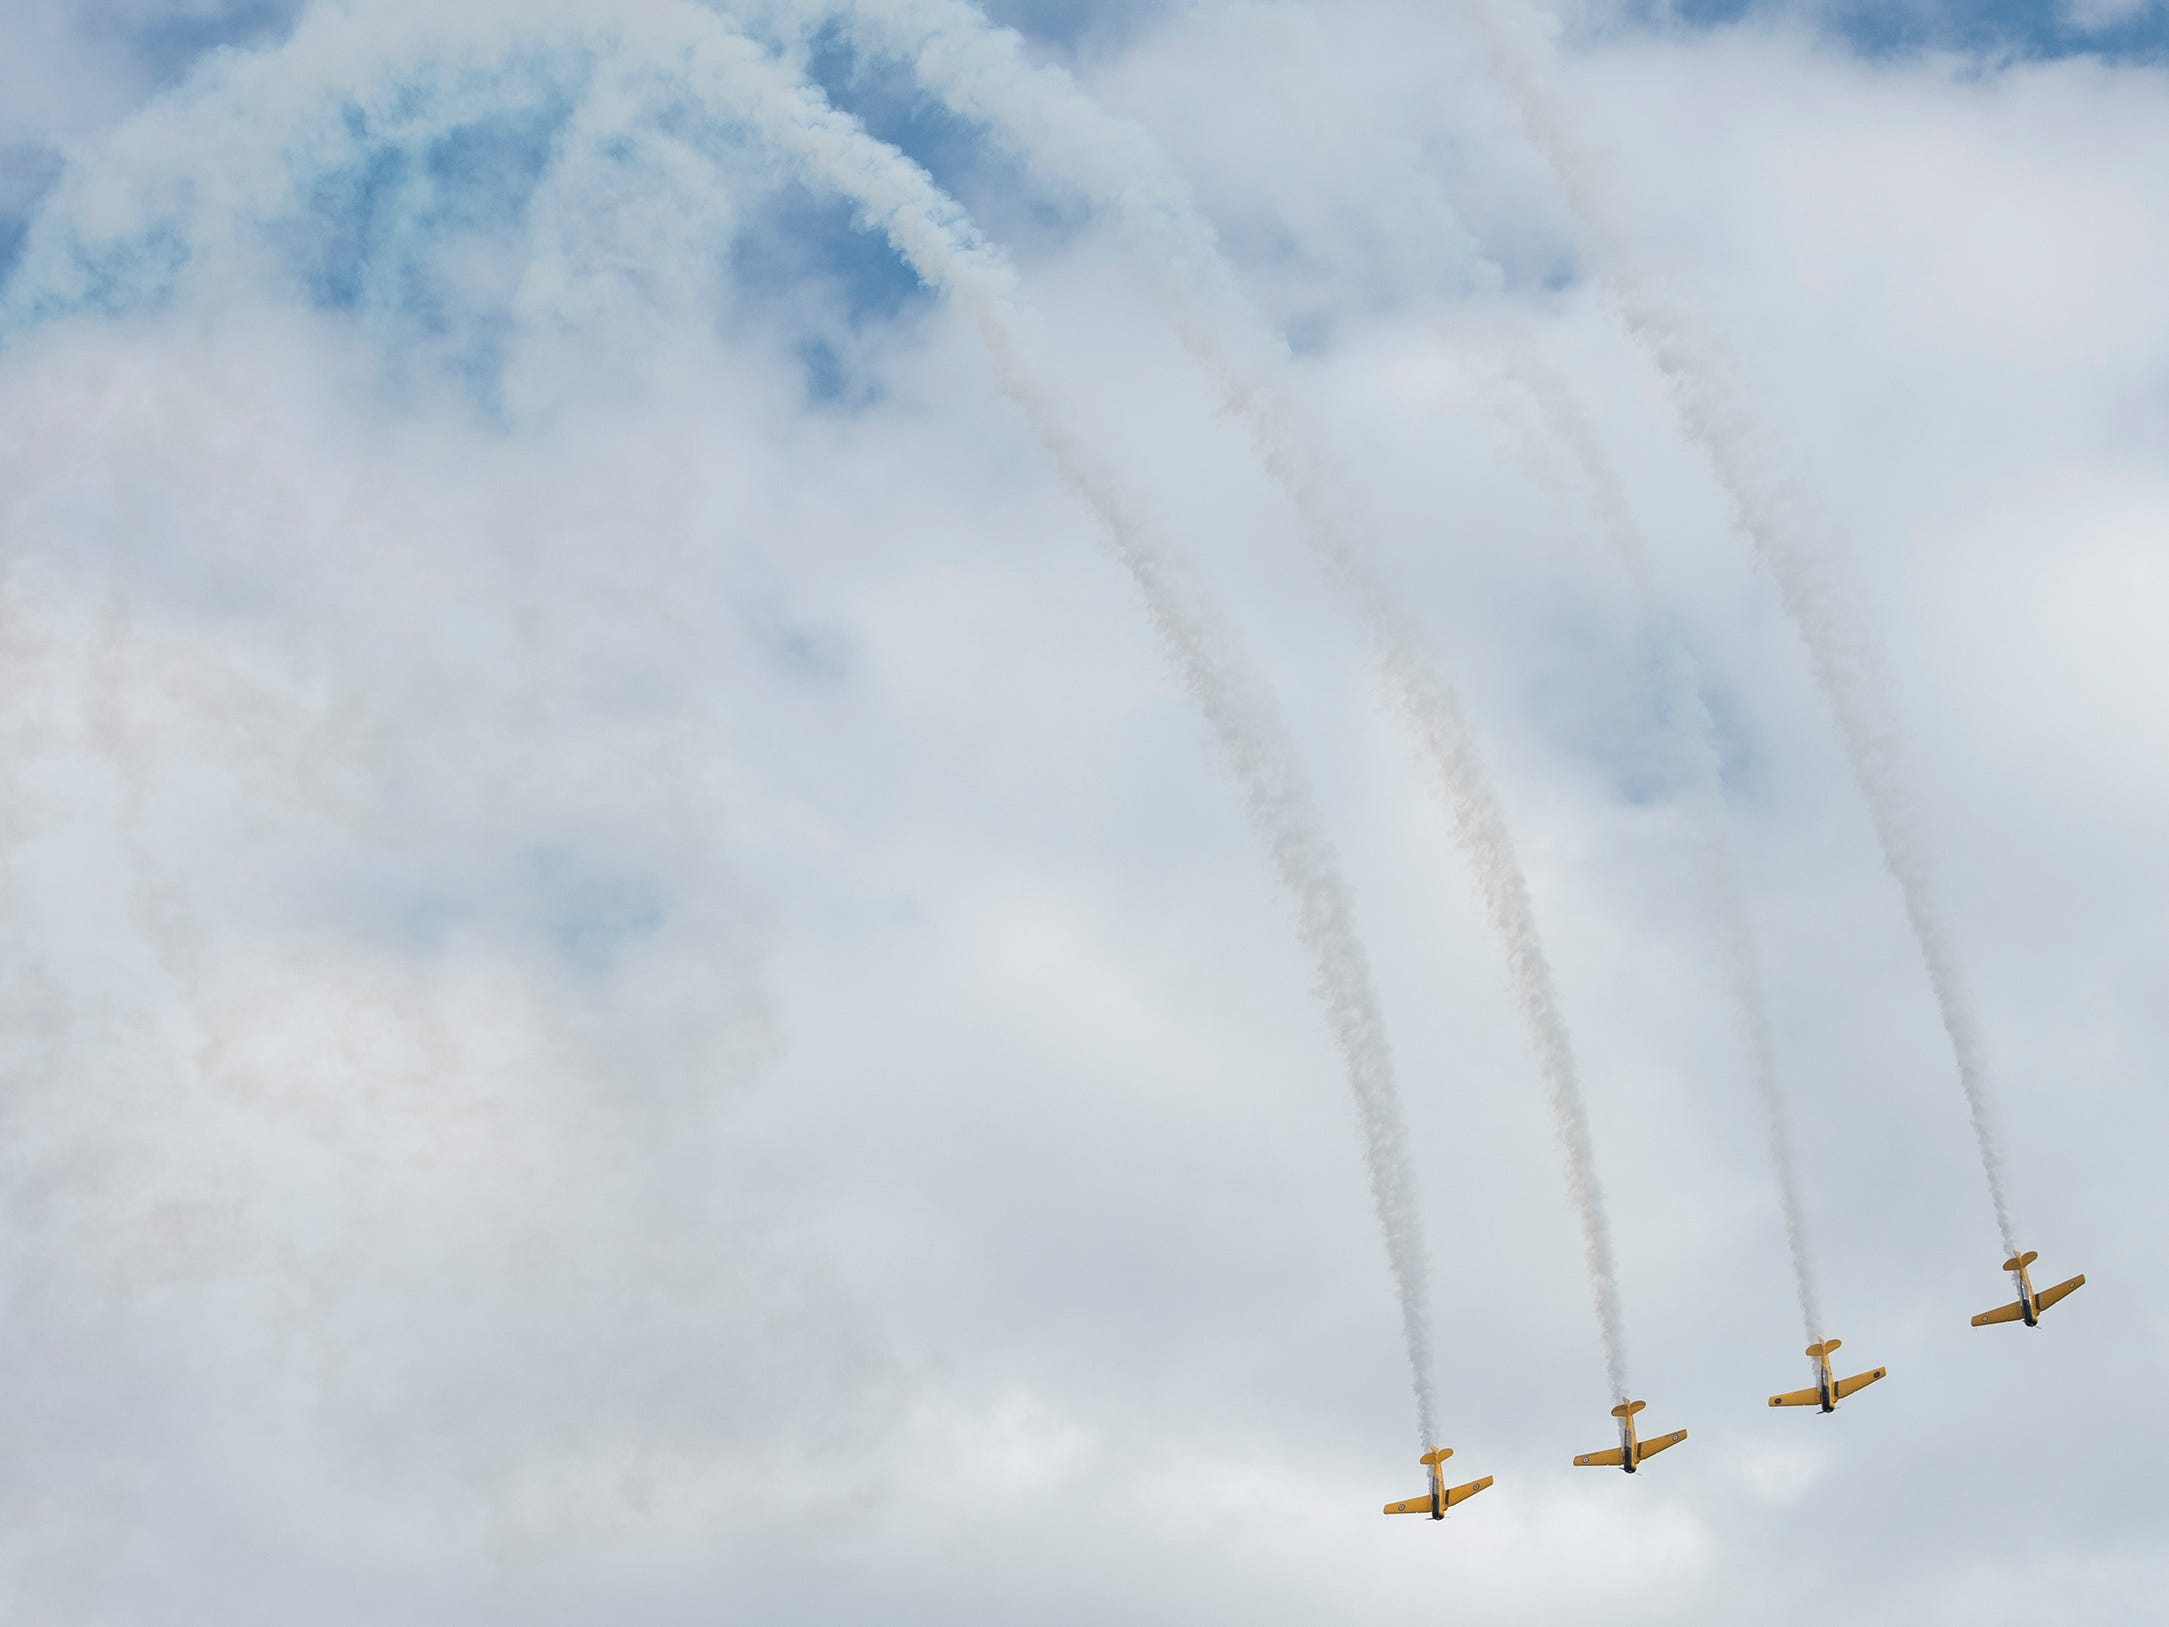 The Canadian Harvard Aerobatic Team flies downward after completing a sharp turn during the afternoon air show at AirVenture in Oshkosh, Wis., on Thursday, July 26, 2018. The team flies as a tribute to World War II veterans.